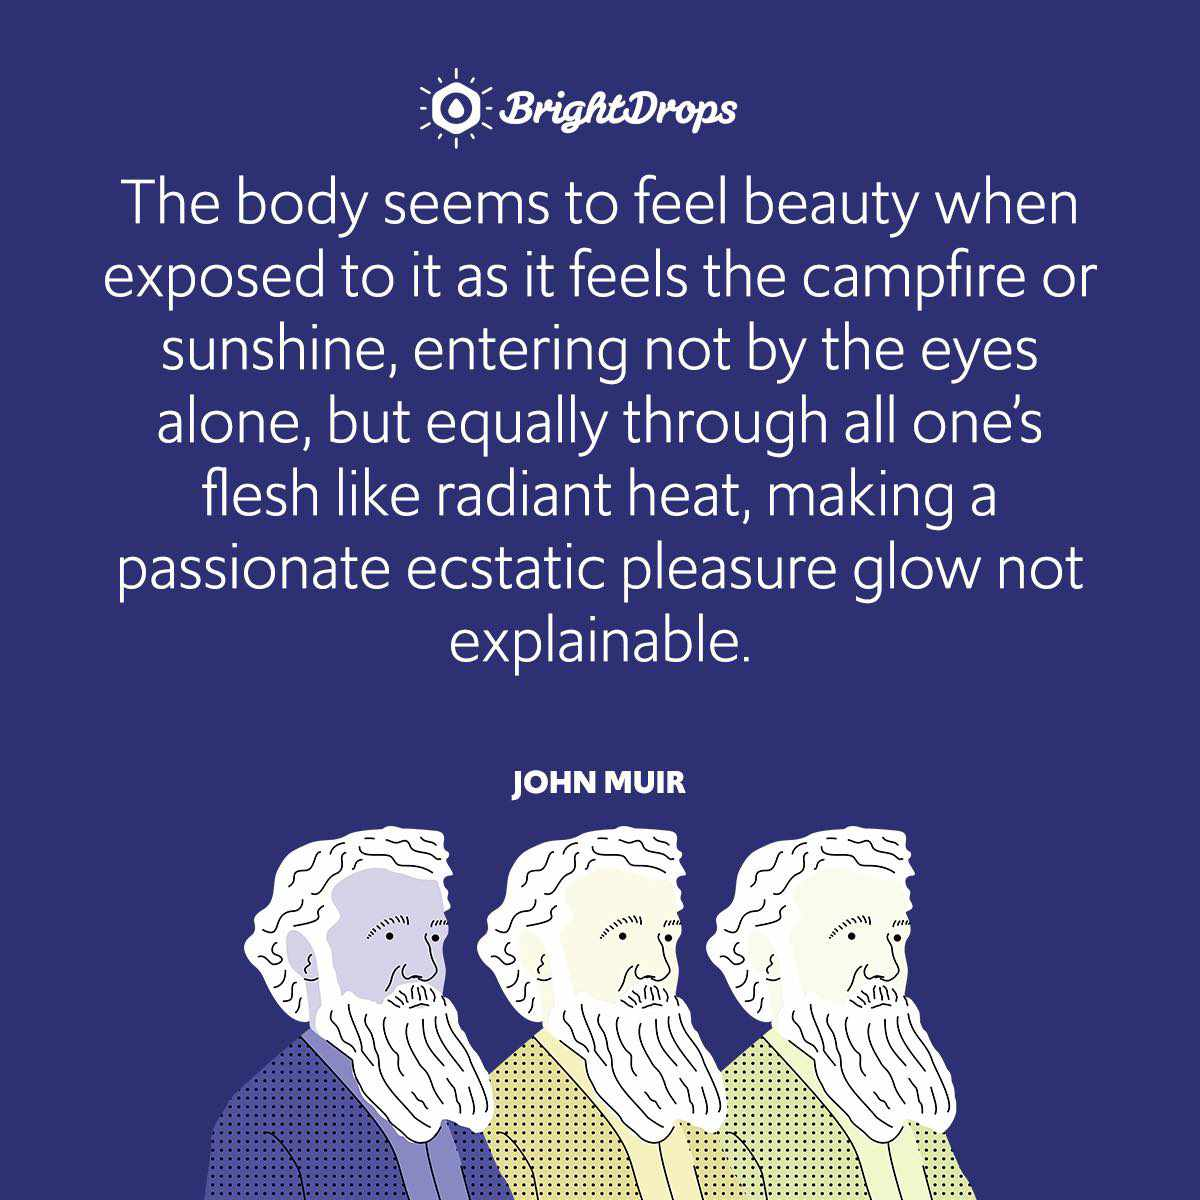 The body seems to feel beauty when exposed to it as it feels the campfire or sunshine, entering not by the eyes alone, but equally through all one's flesh like radiant heat, making a passionate ecstatic pleasure glow not explainable.